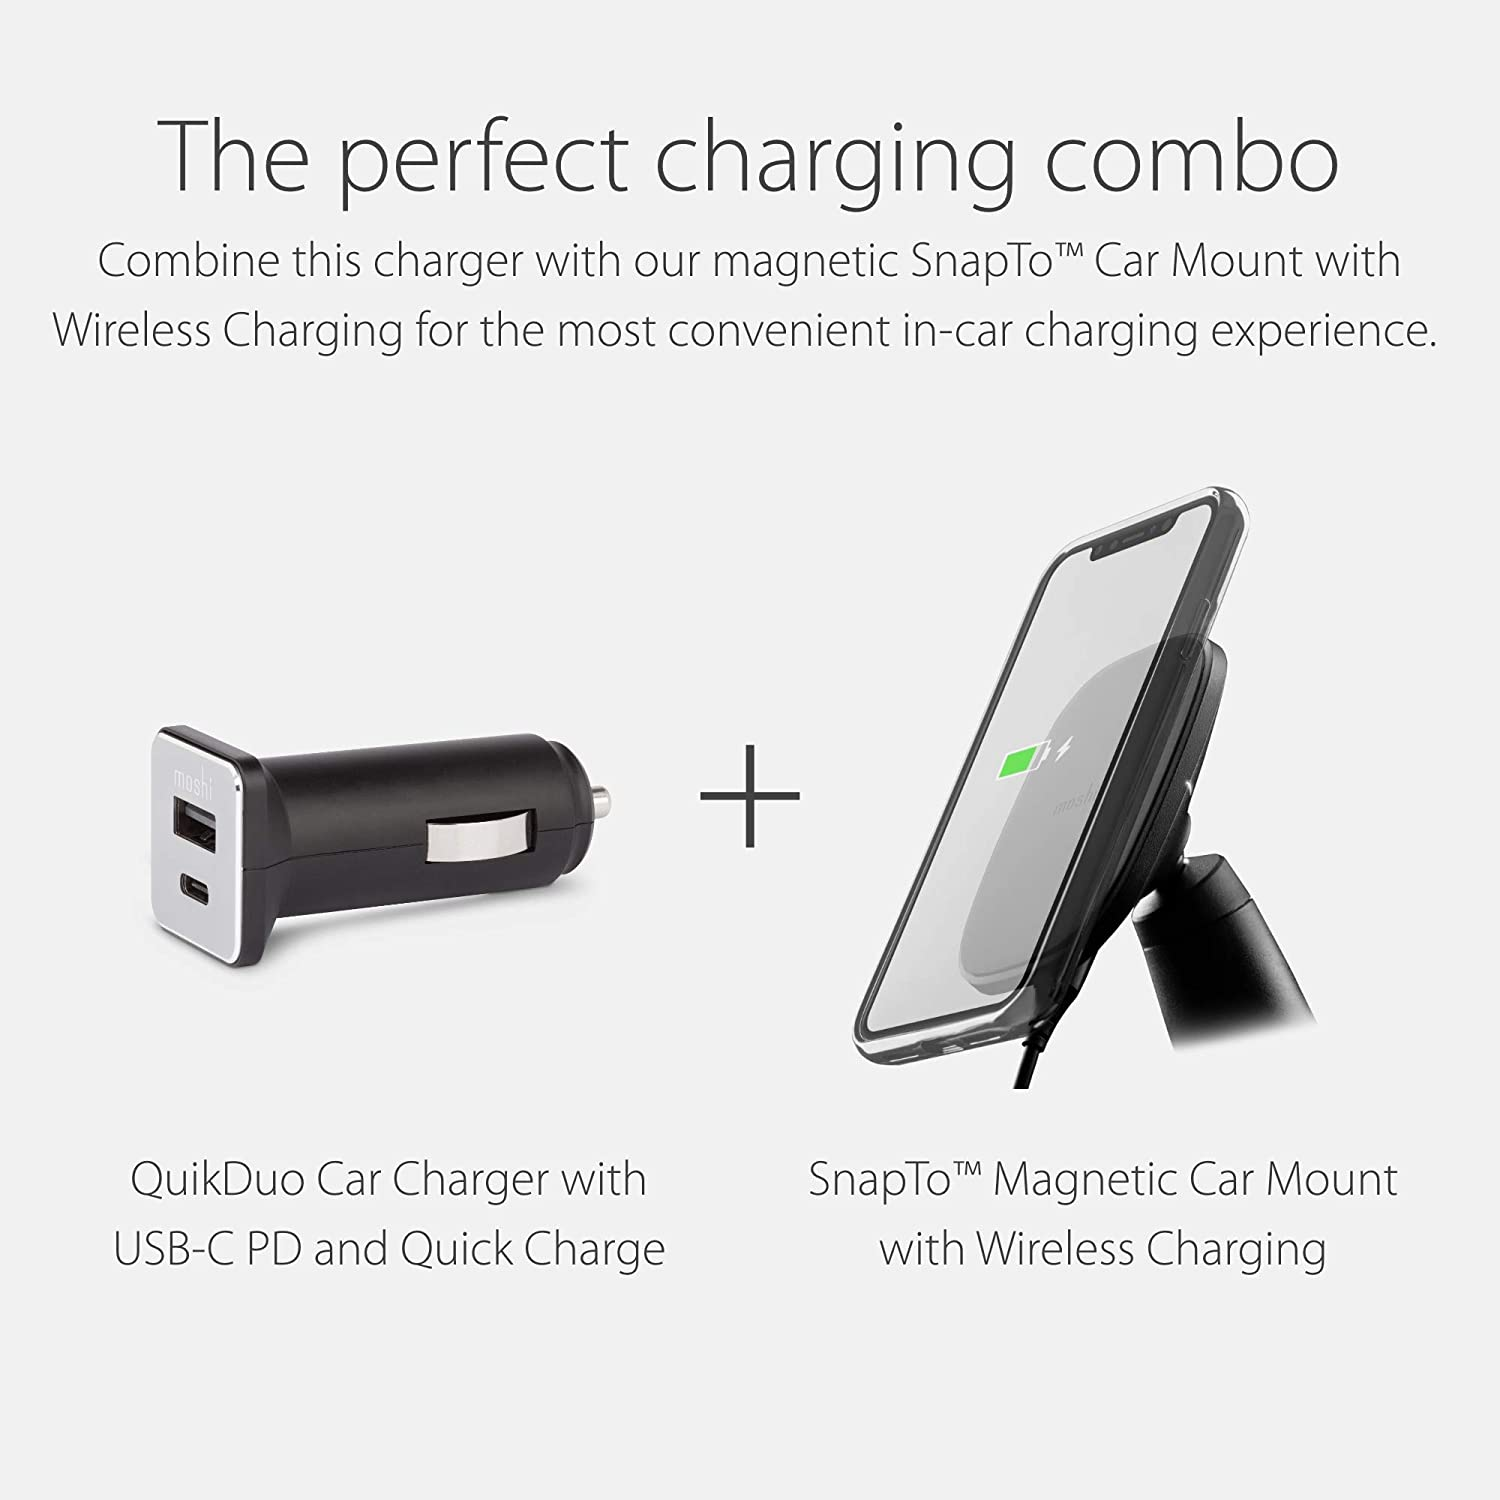 Moshi QuikDuo Car Charger 36W for iPhone//Android /& Other Mobile Devices Ultra-Compact Black Fast Charging USB C Power Delivery /& Quick Charge 18W 9V//2A